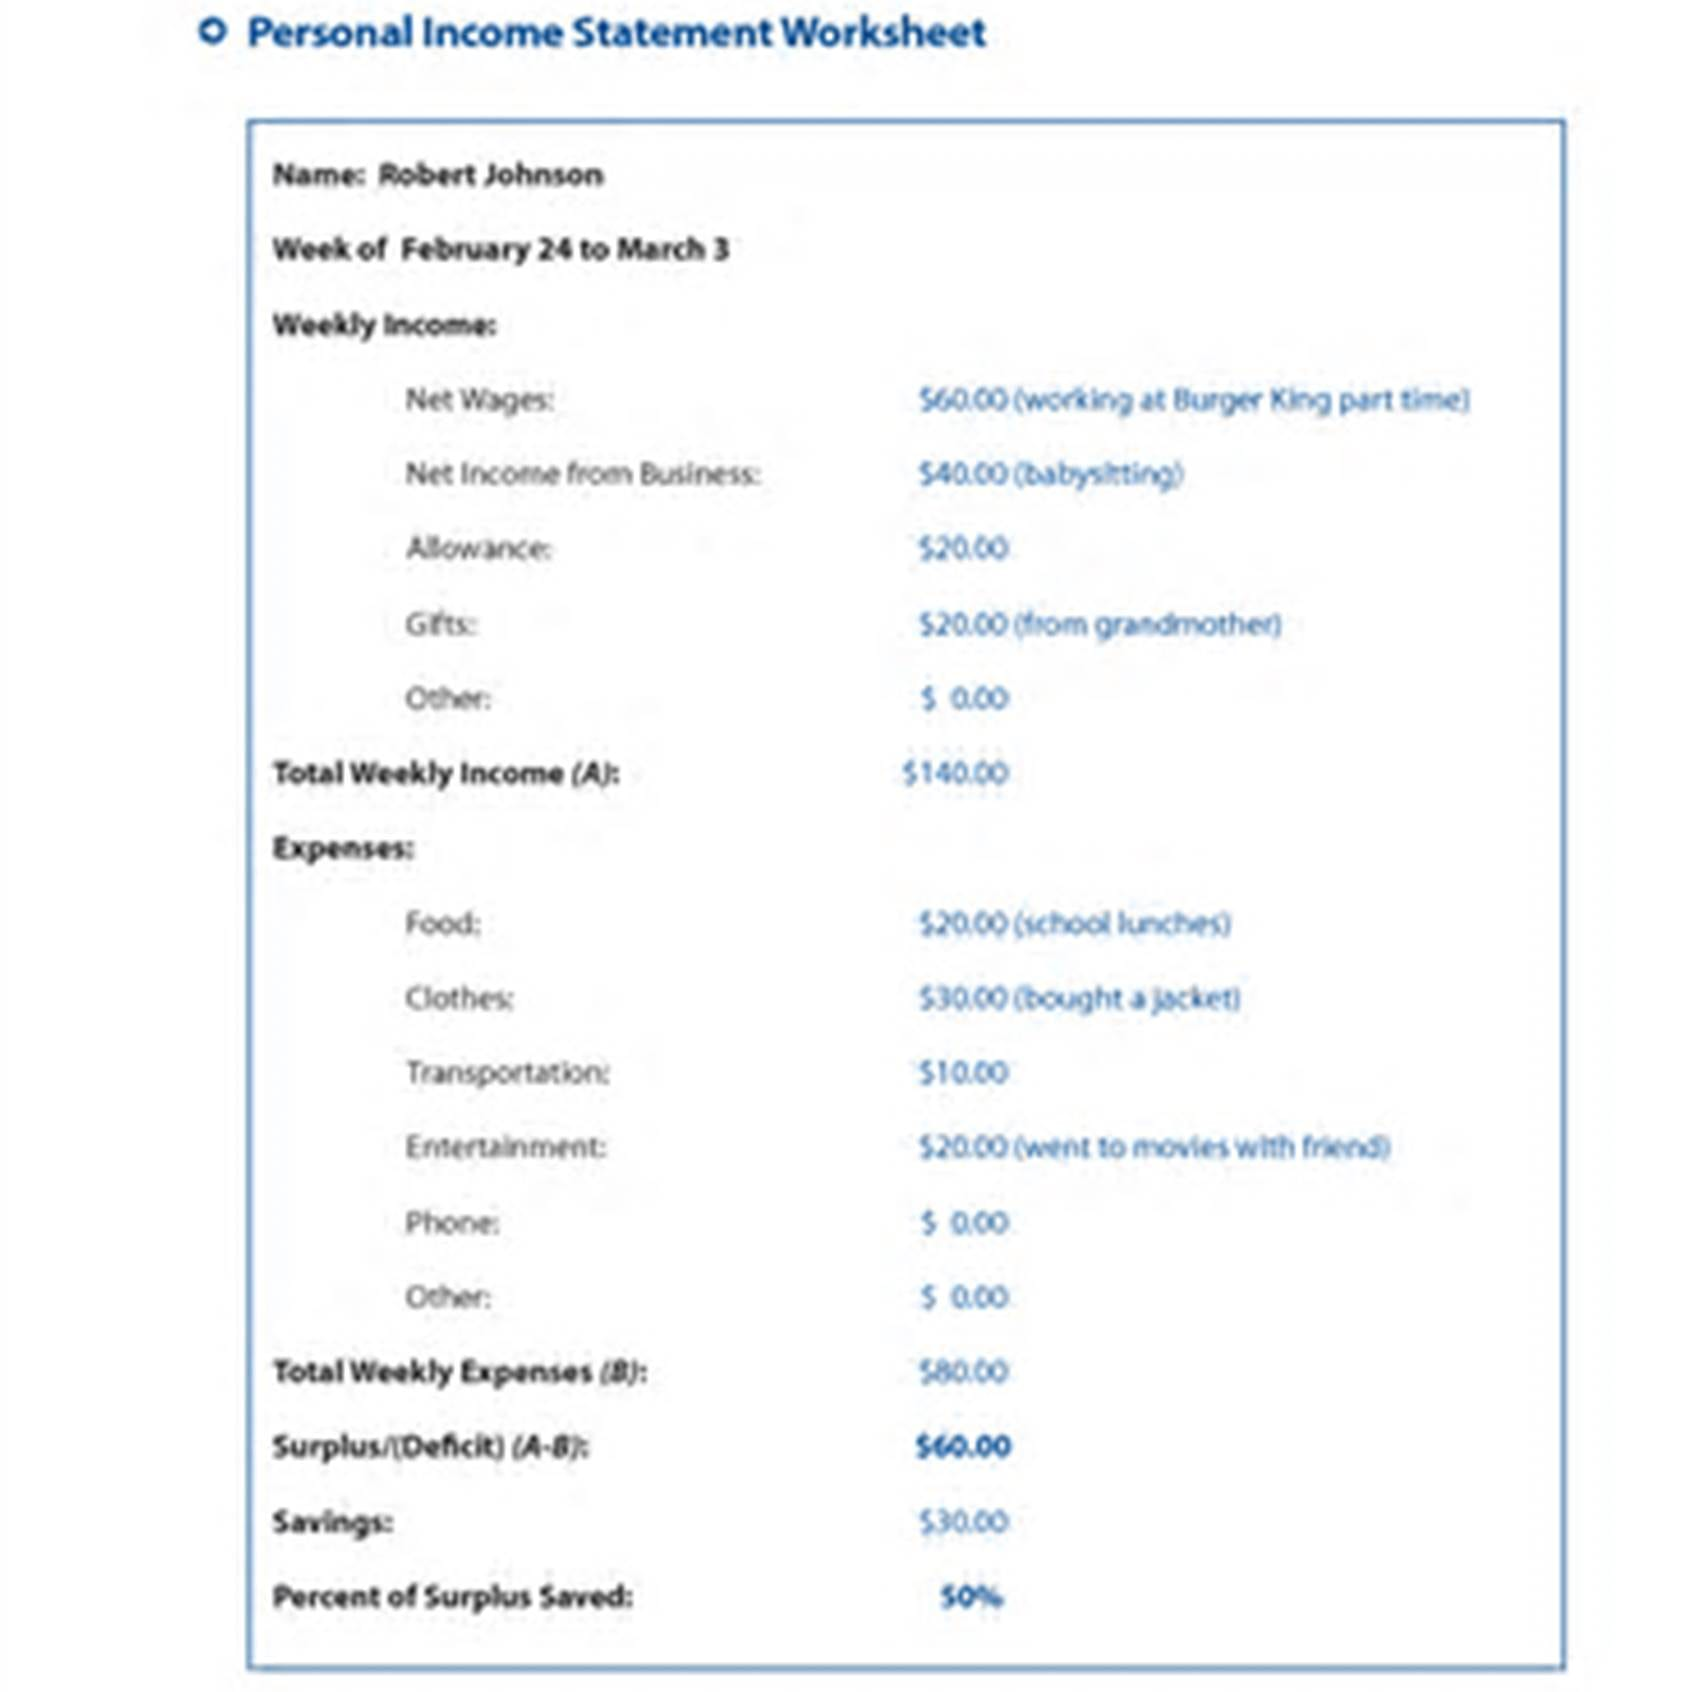 Income Statement Worksheet Template